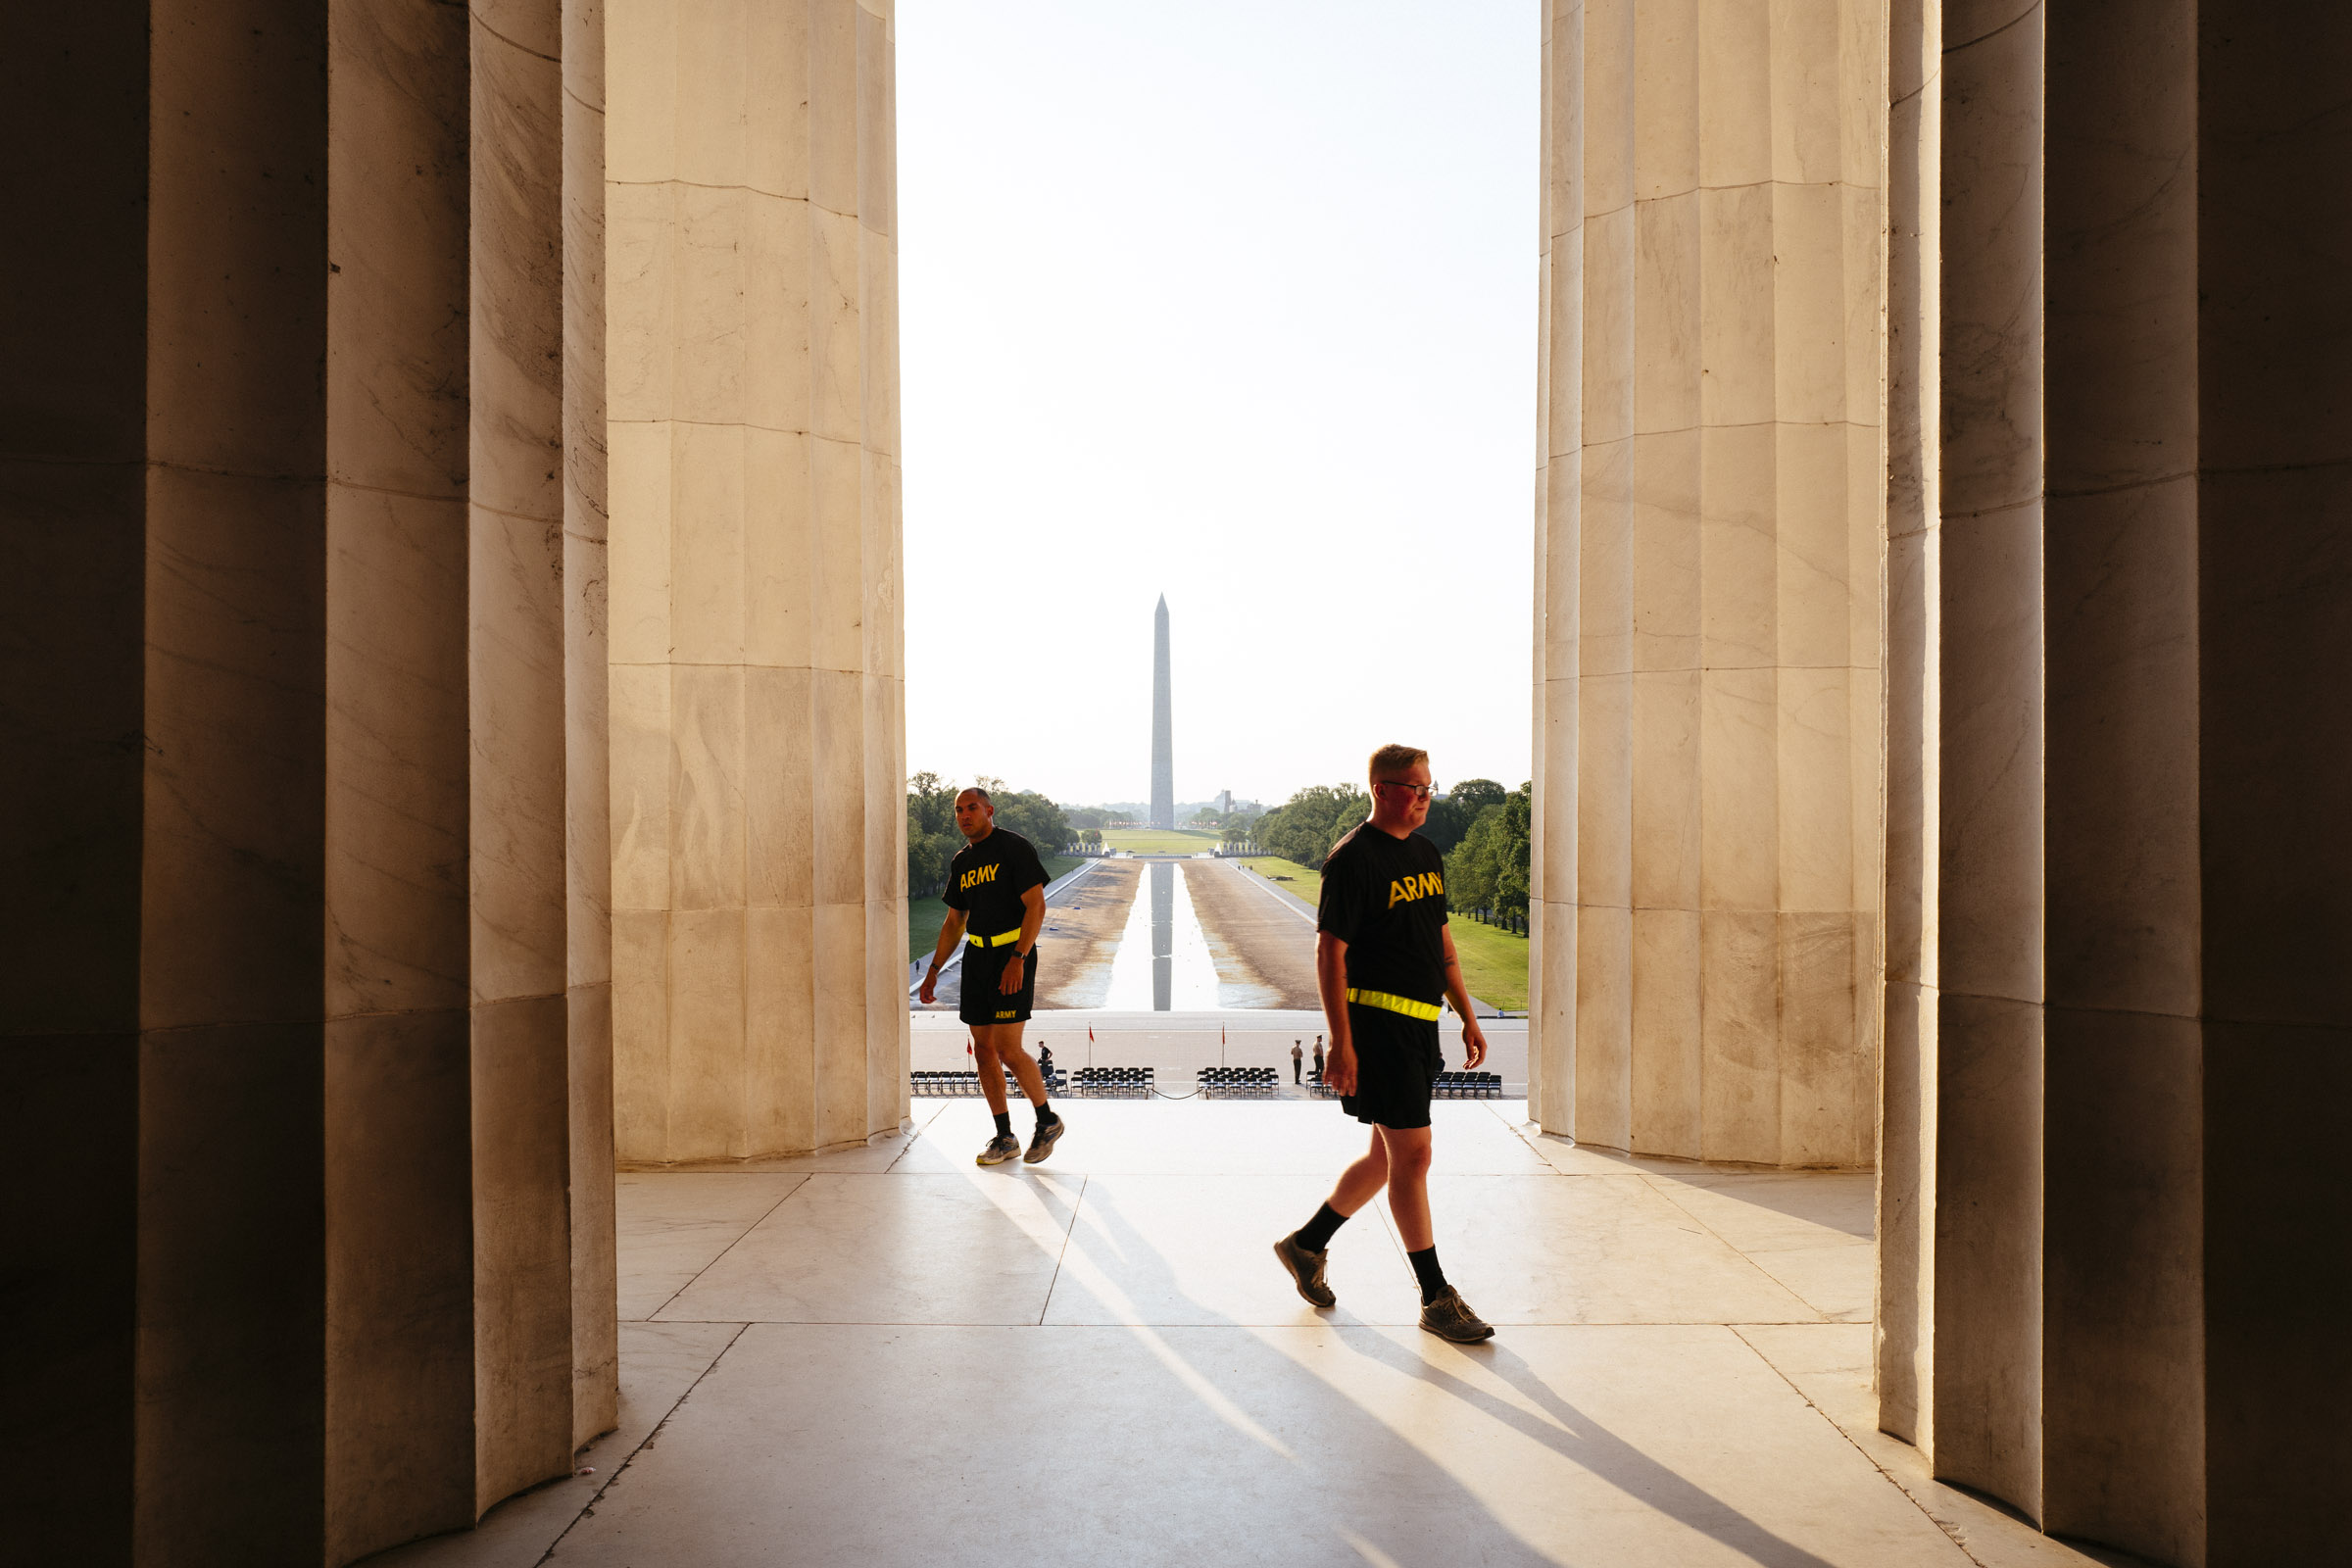 US Army, Lincoln Memorial